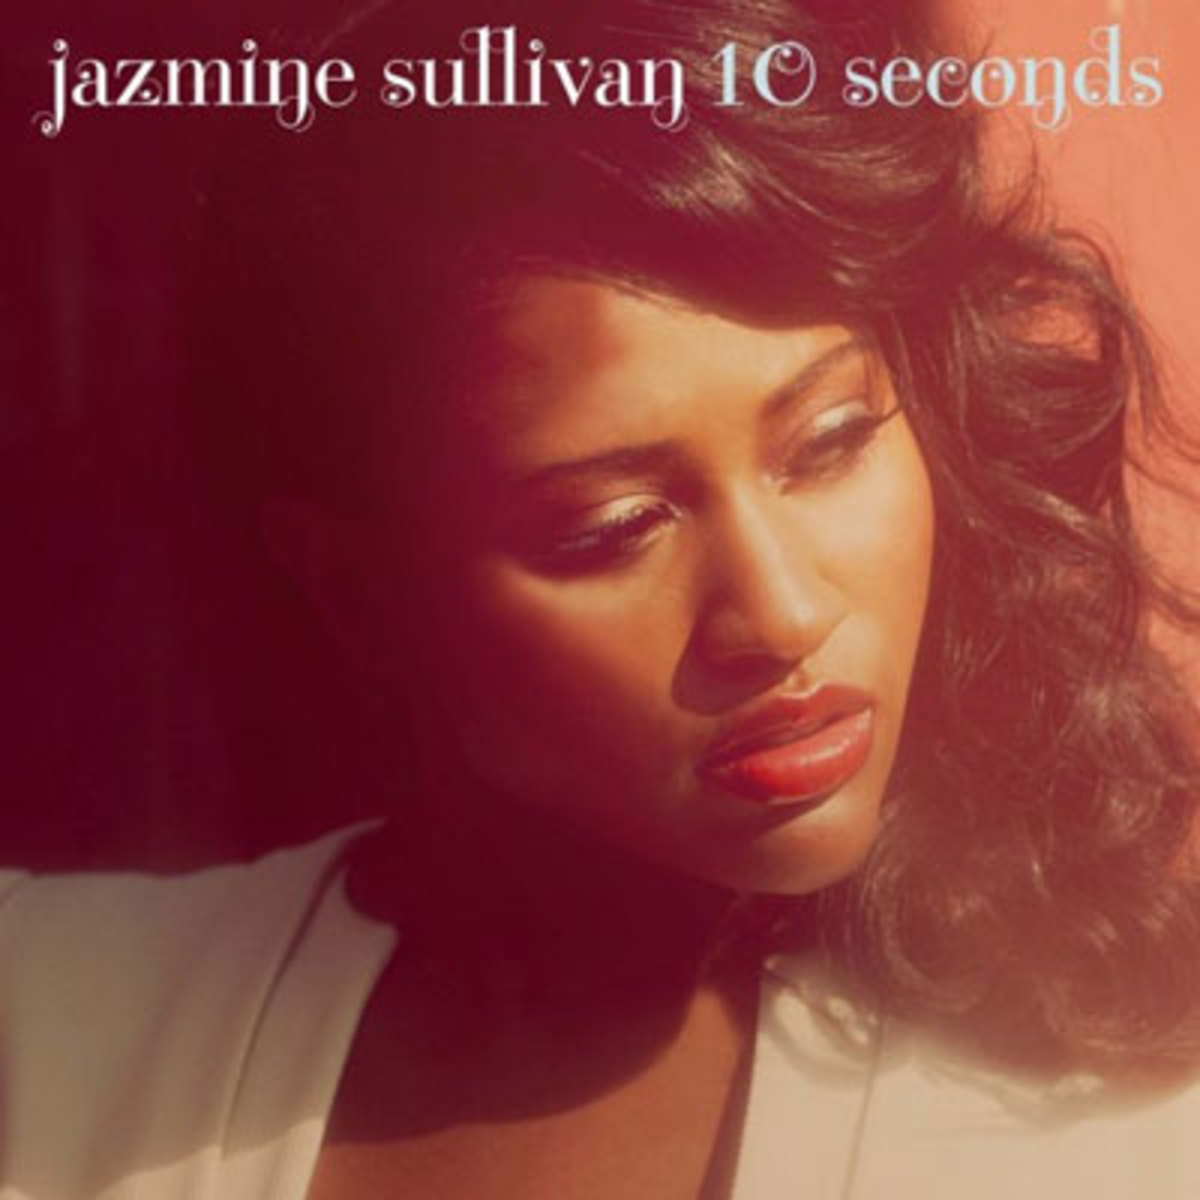 jazminesullivan-10seconds.jpg